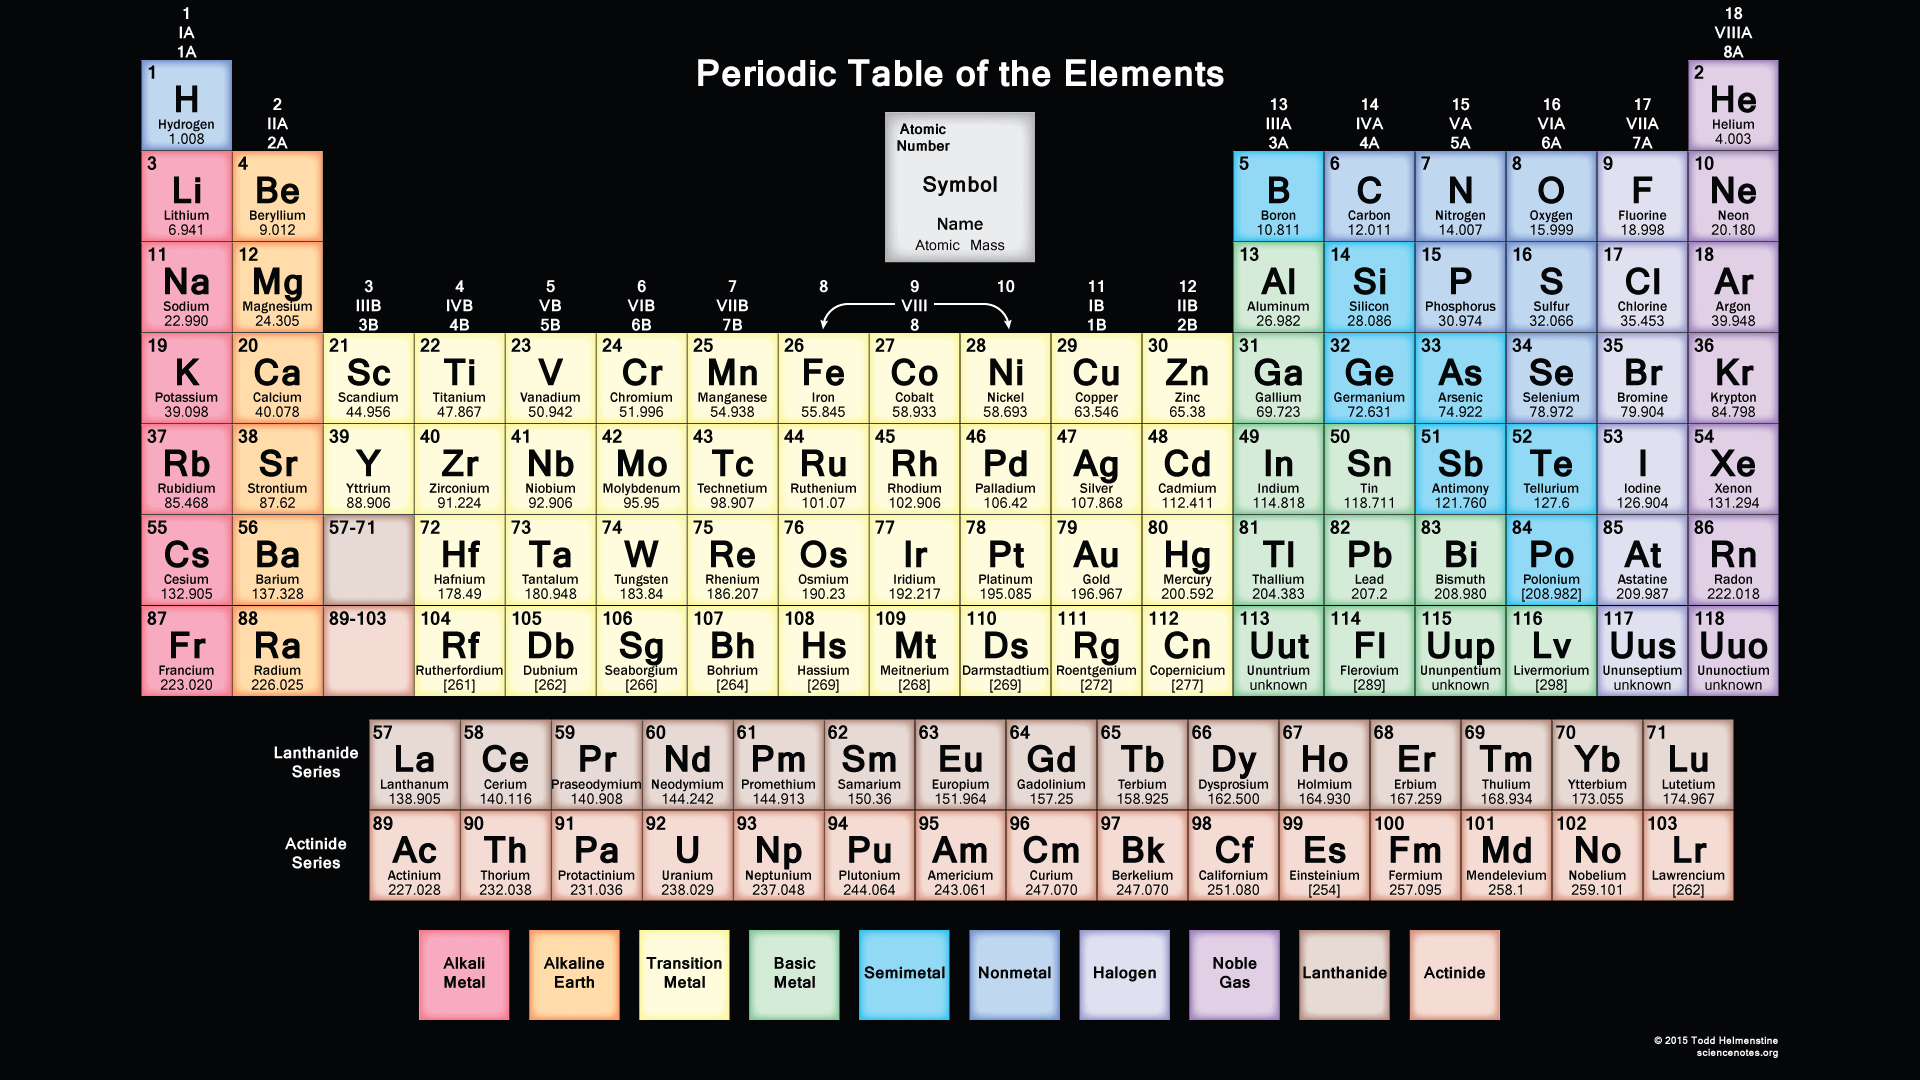 Hd periodic table wallpaper muted colors new muted periodic table black background gamestrikefo Images